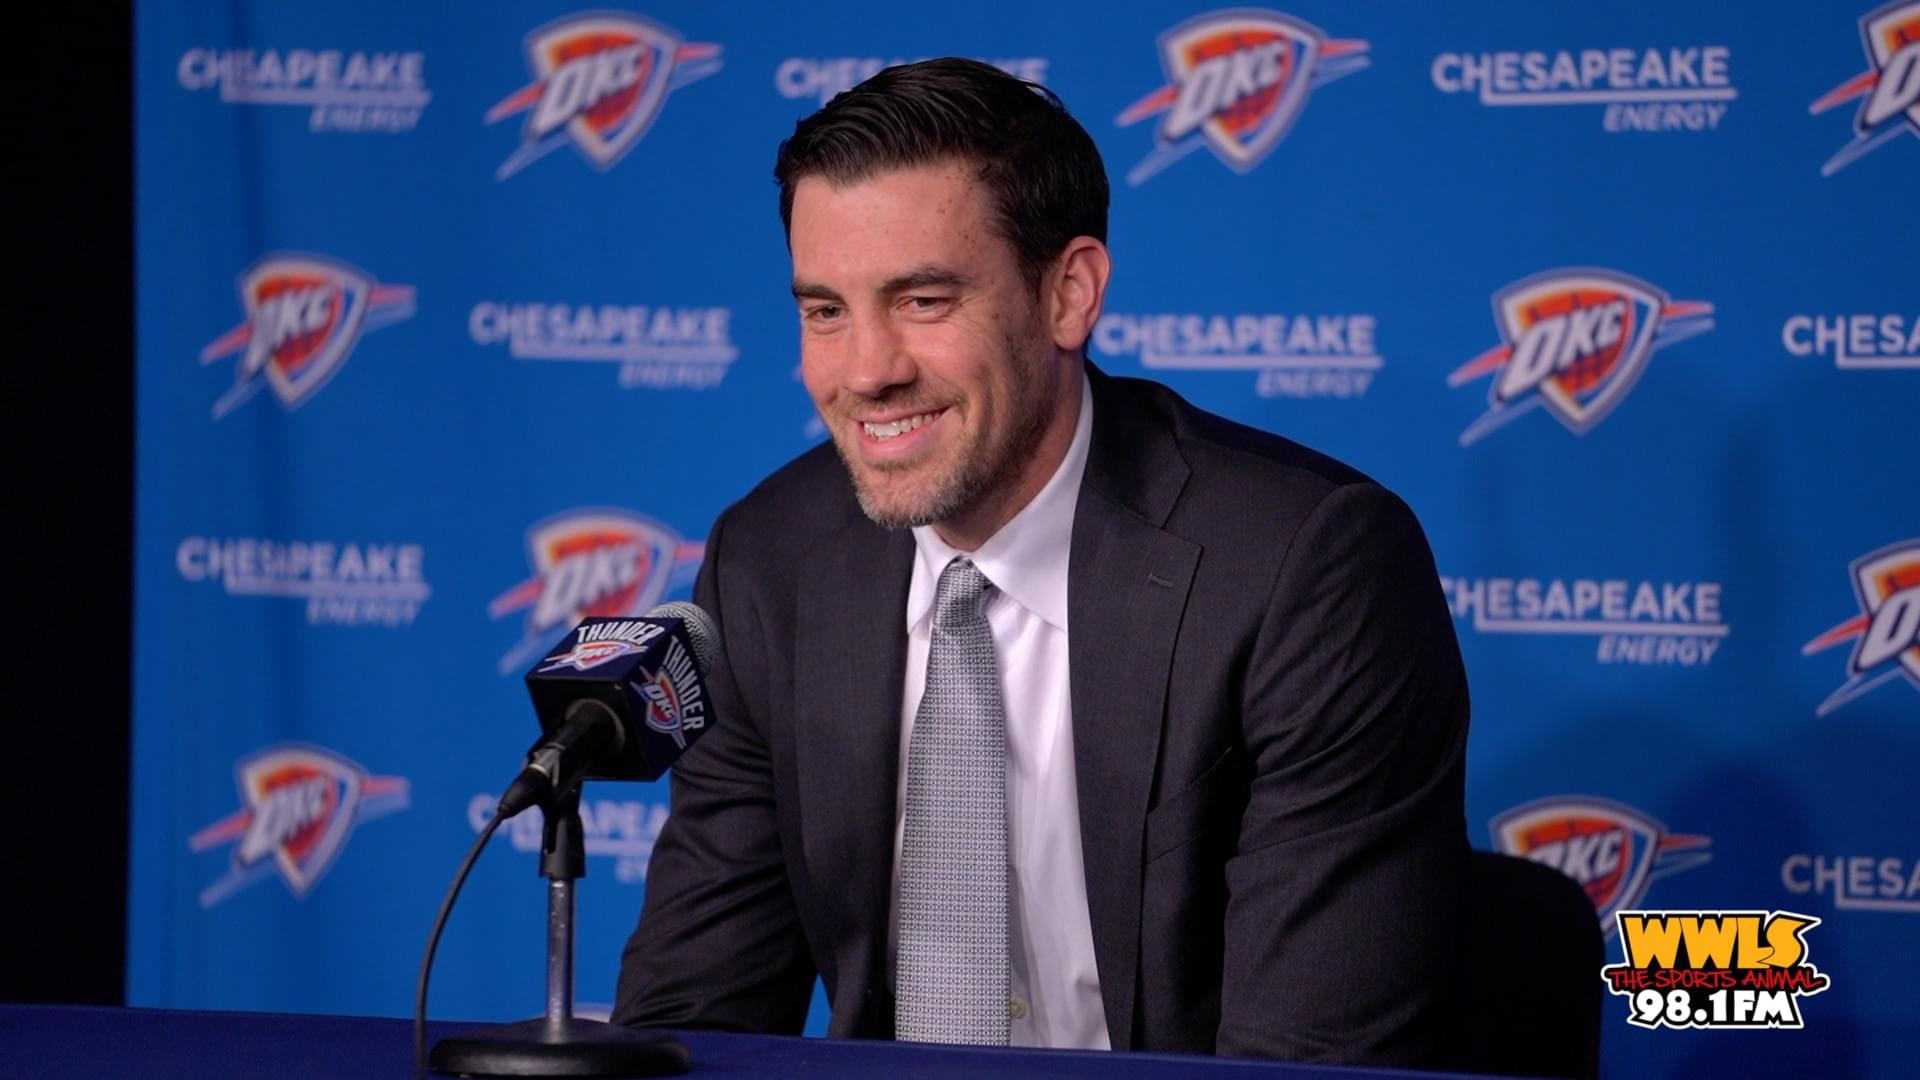 THUMBNAIL_NICK COLLISON JERSEY RETIREMENT PRESSER FULL